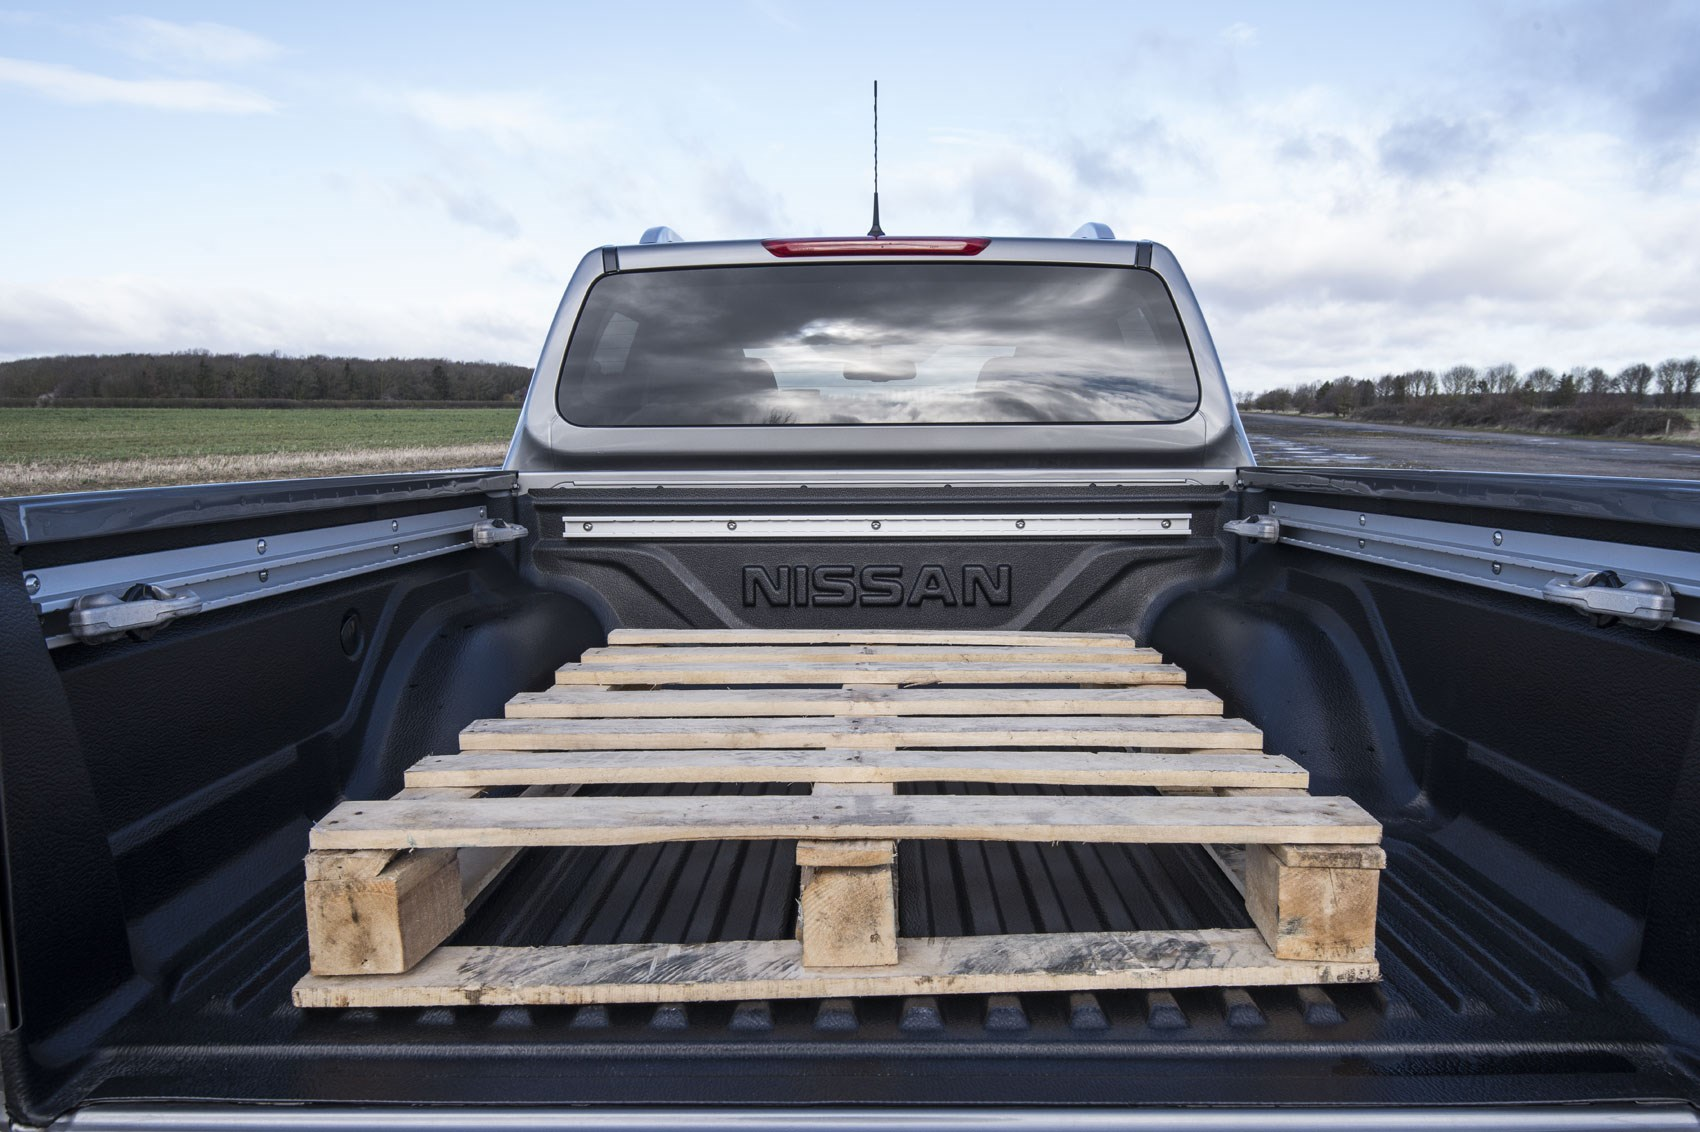 Nissan Navara payload, 2019-onwards update model, load area with pallet